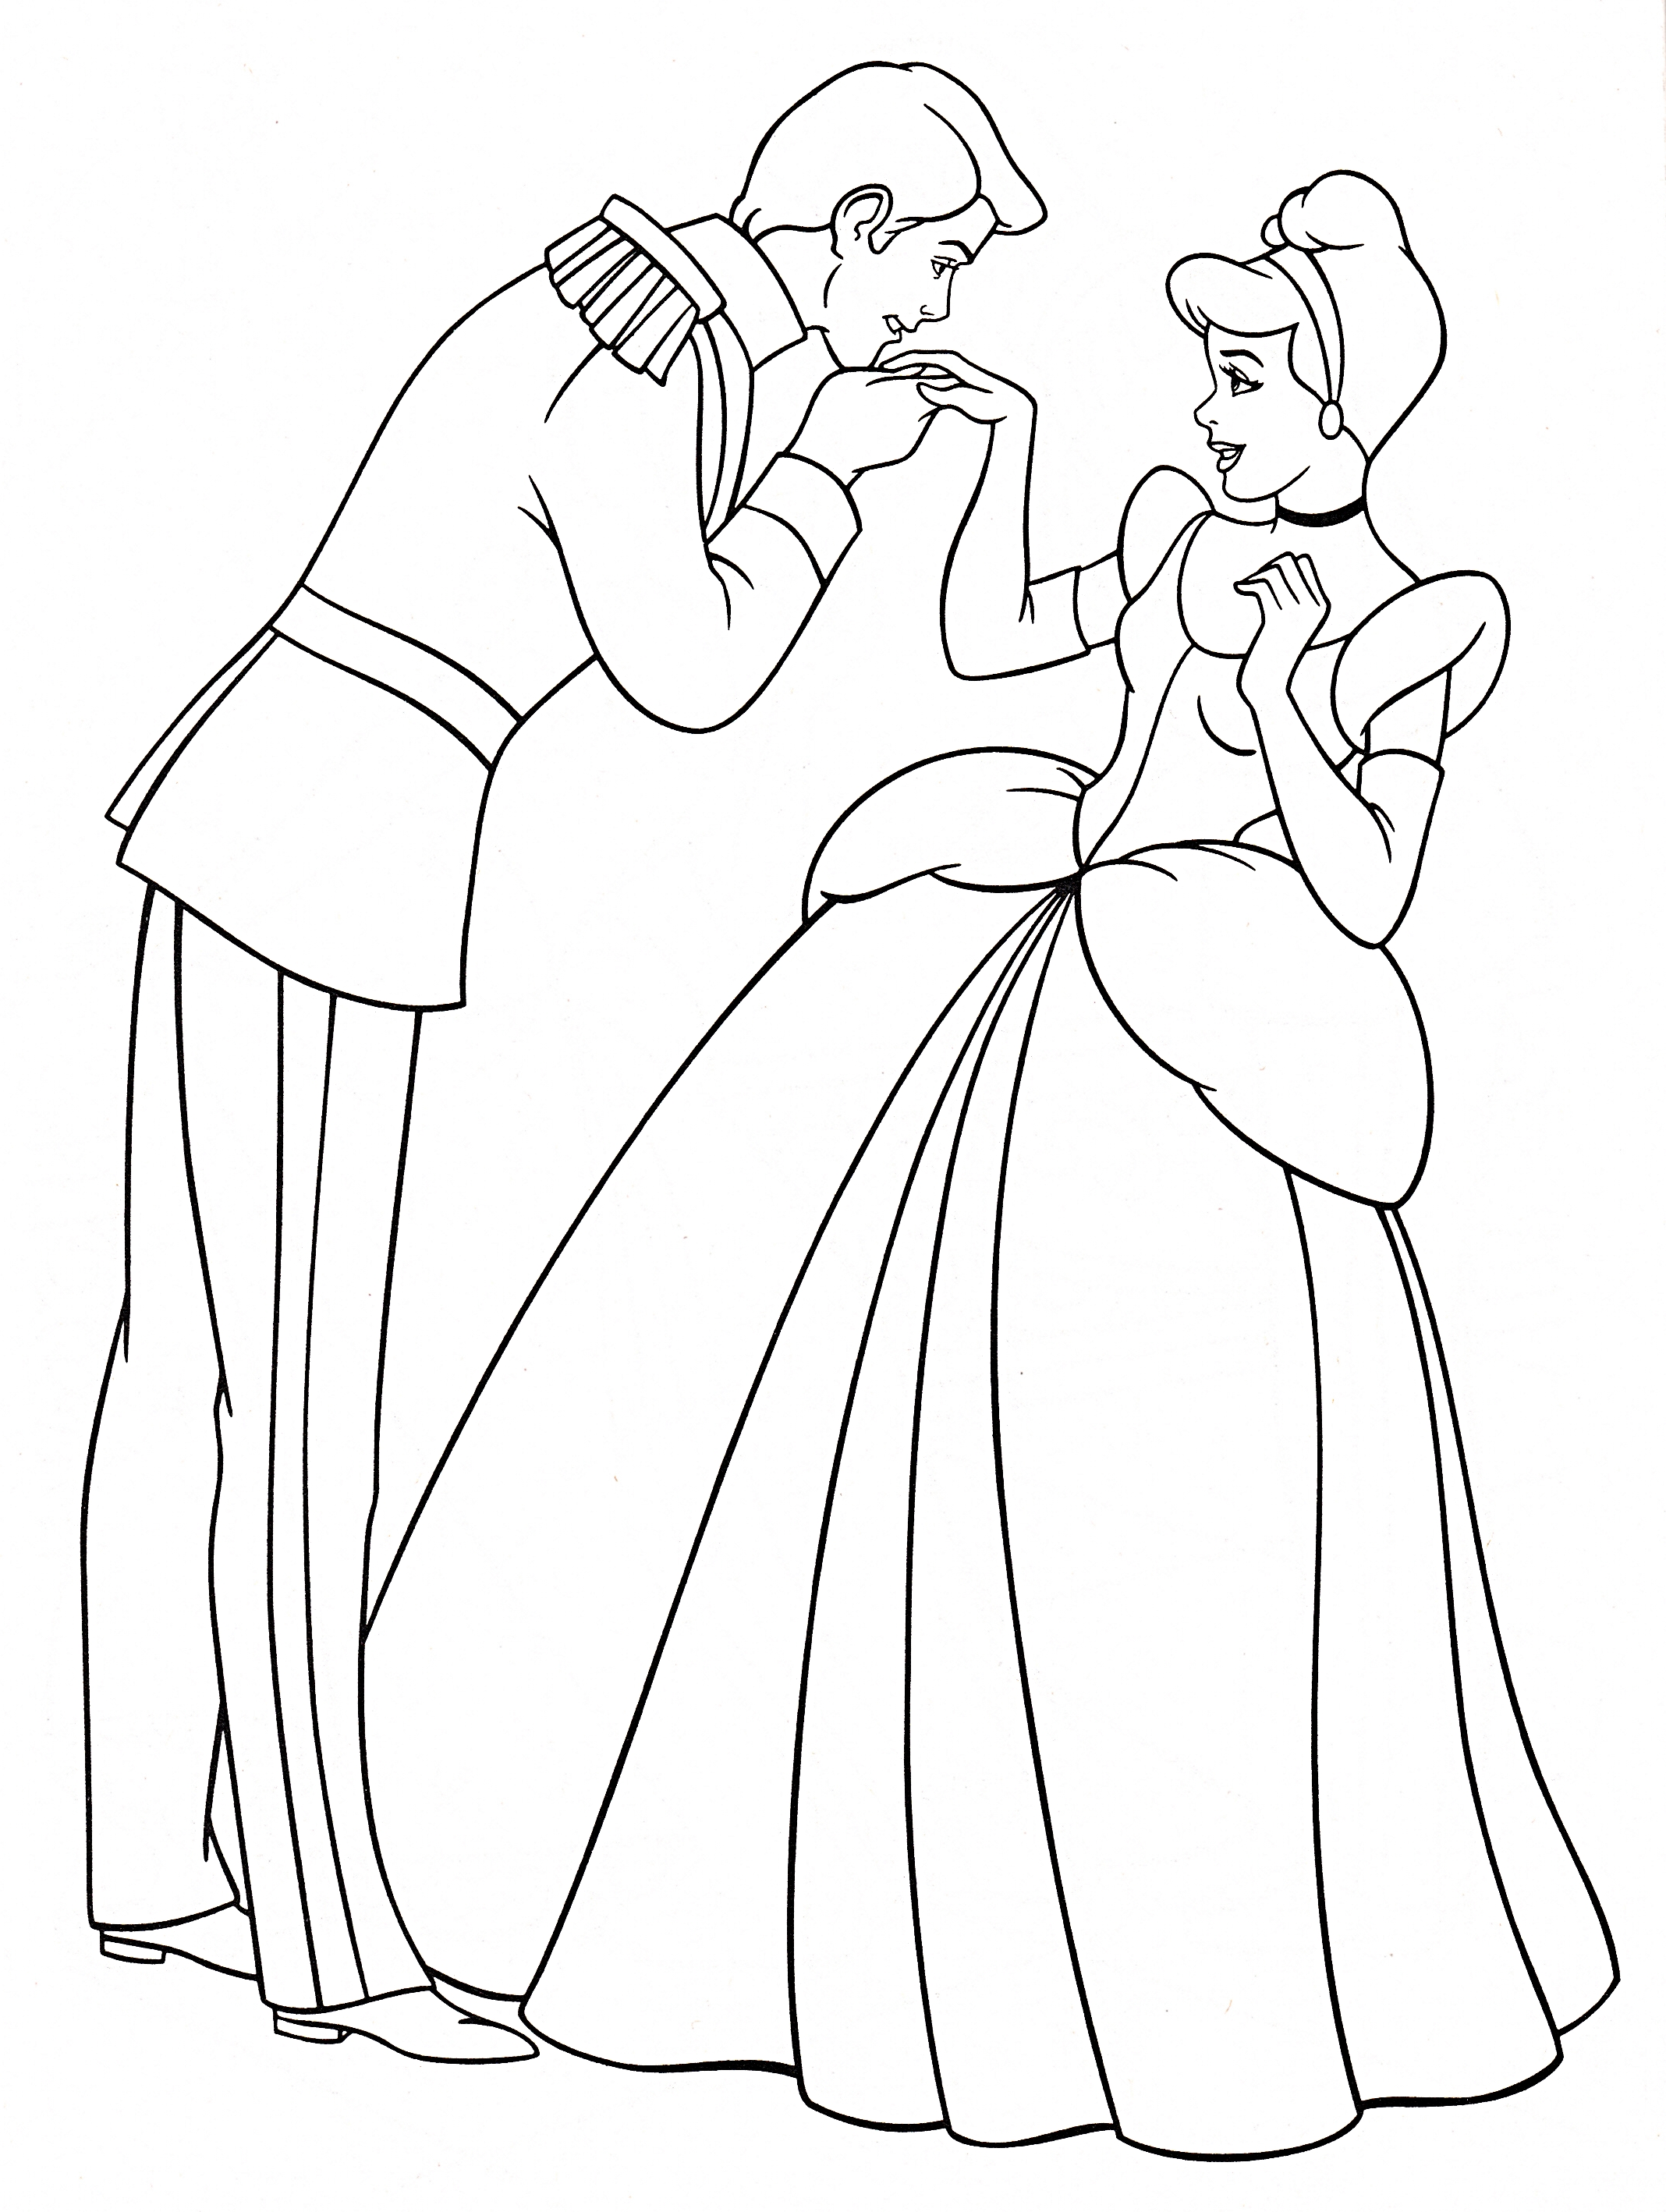 Disney Outline Drawing at GetDrawingscom Free for personal use